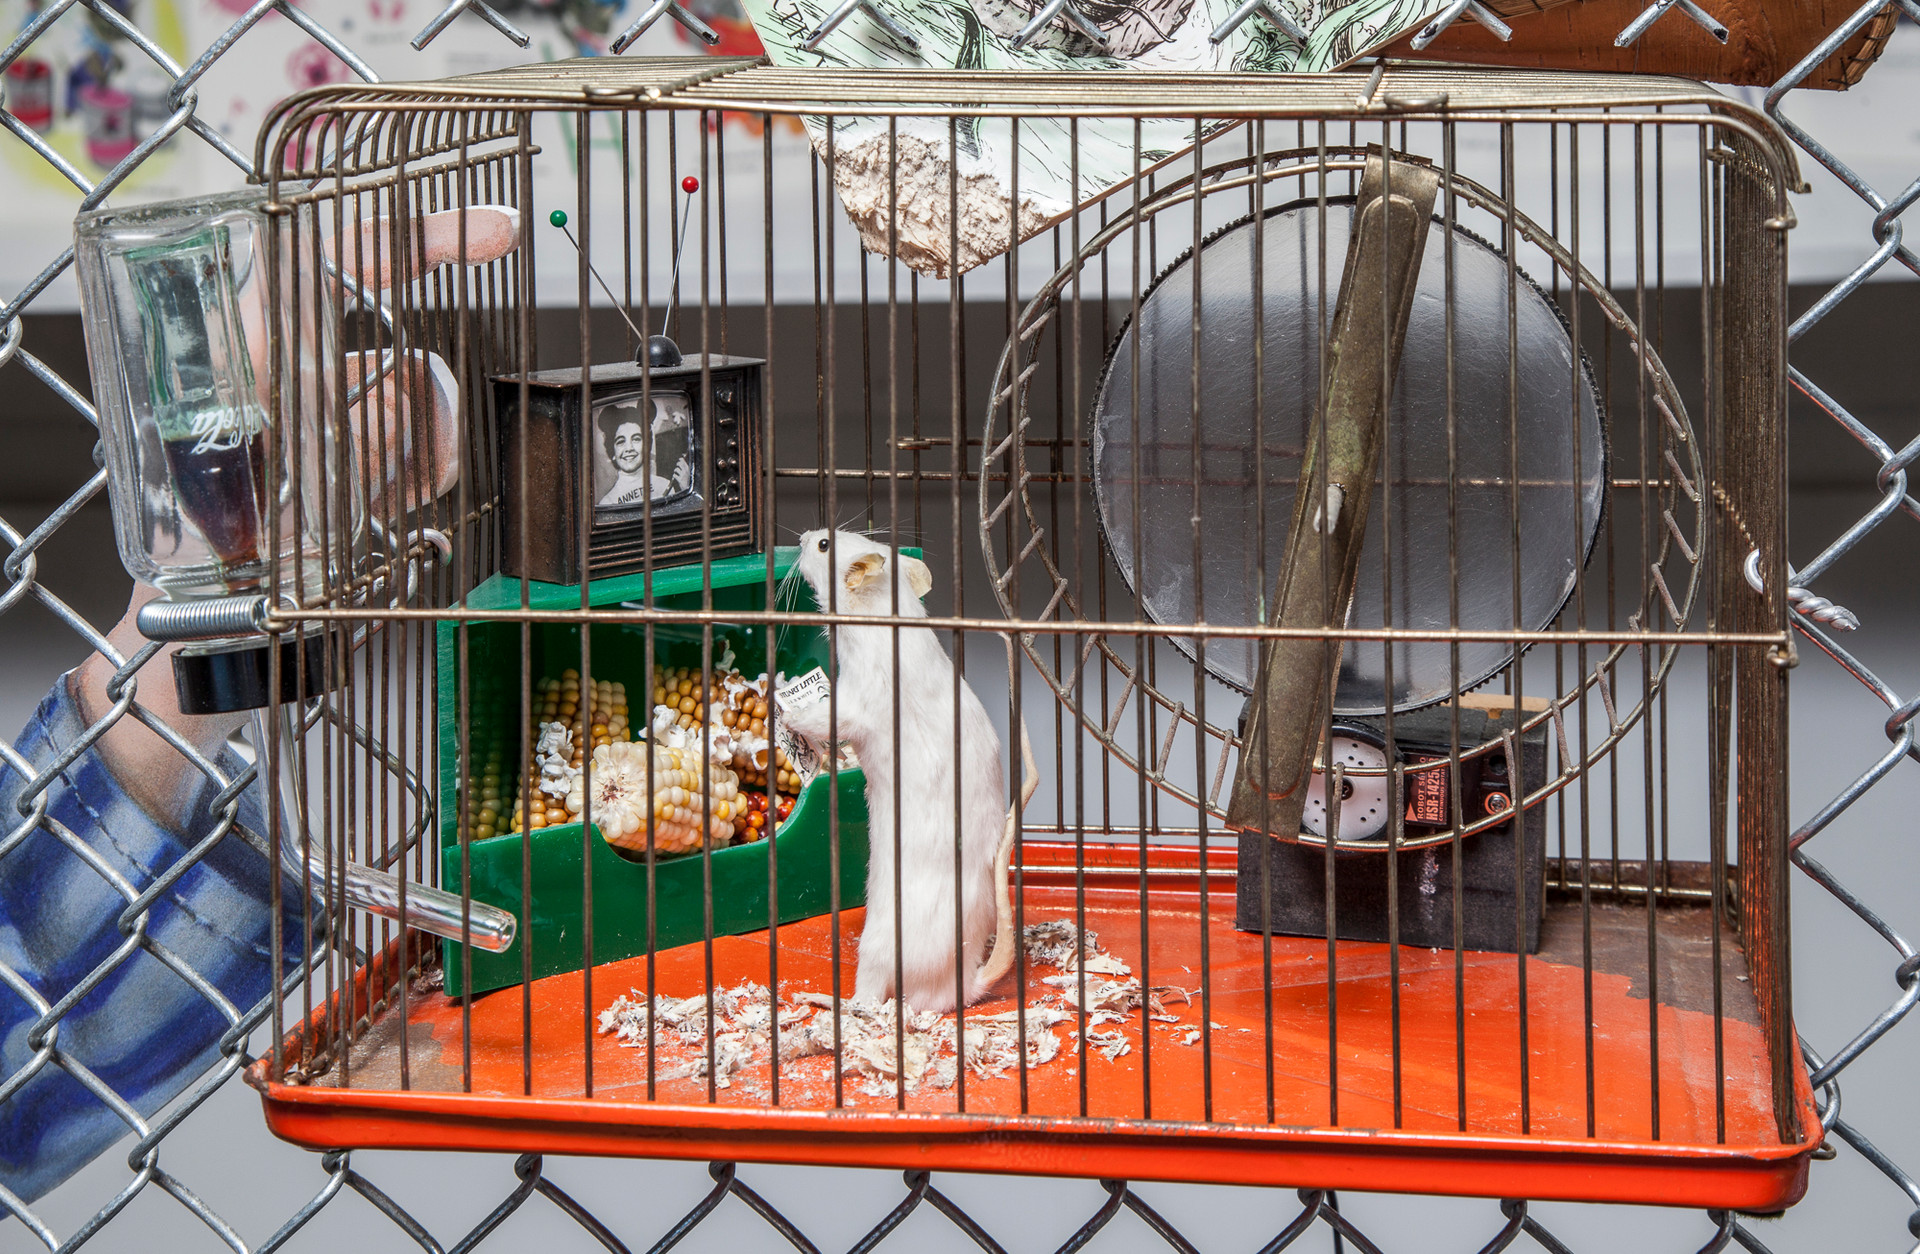 Inside the vintage rodent cage is a taxidermied white mouse. The implied narrative is that the mouse has stepped off his exercise wheel (which is battery operated and continues to turn), abandoned his book (a miniature copy of Stuart Little), and stands totally mesmerized by the image of Annette Funicello (wearing Mouseketeer ears) on his miniature TV set. The food bin below the TV contains his snack food, popcorn, and Coke fills the water receptacle.